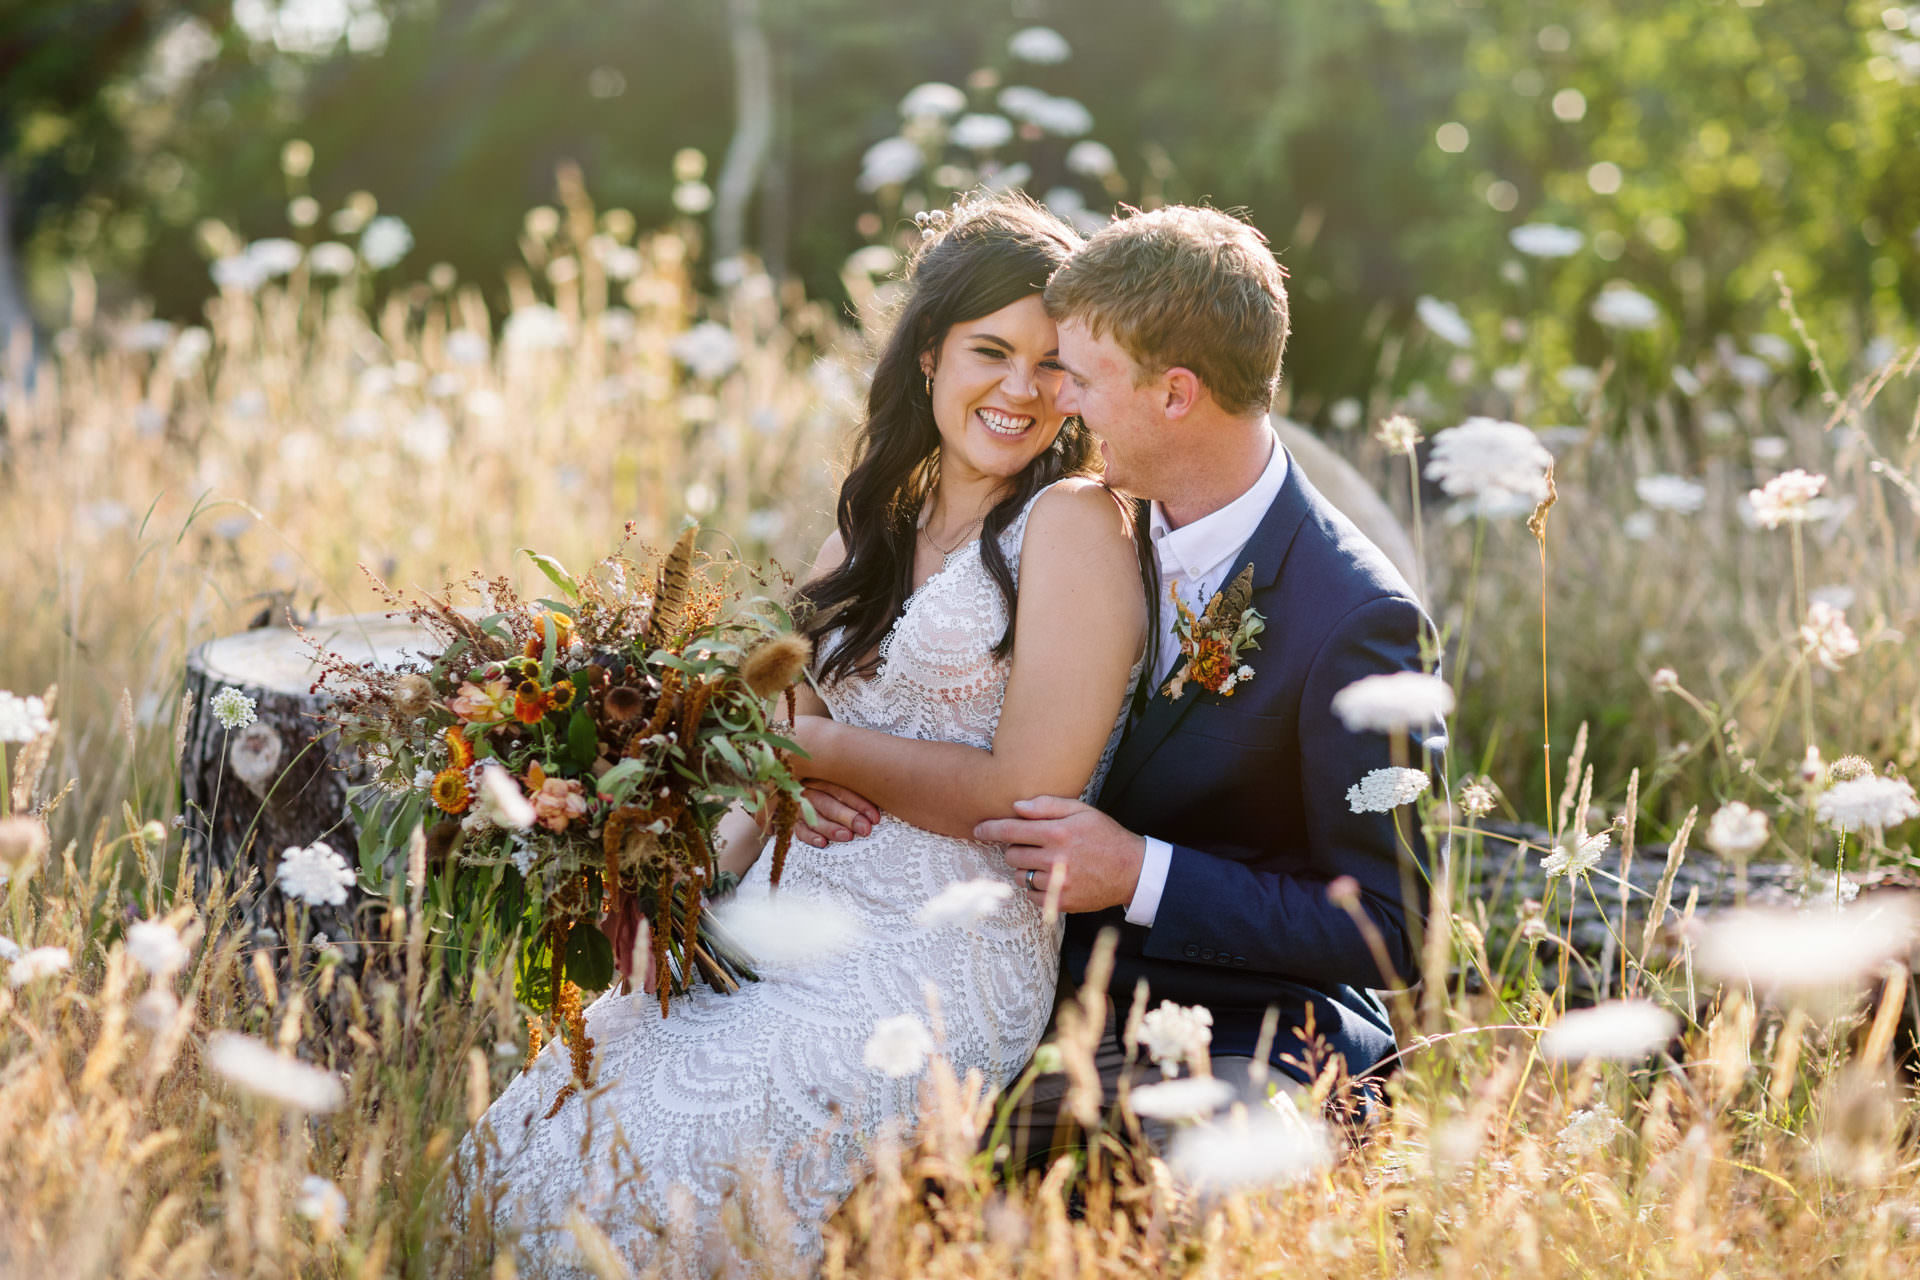 bride and groom flower field wedding photograph